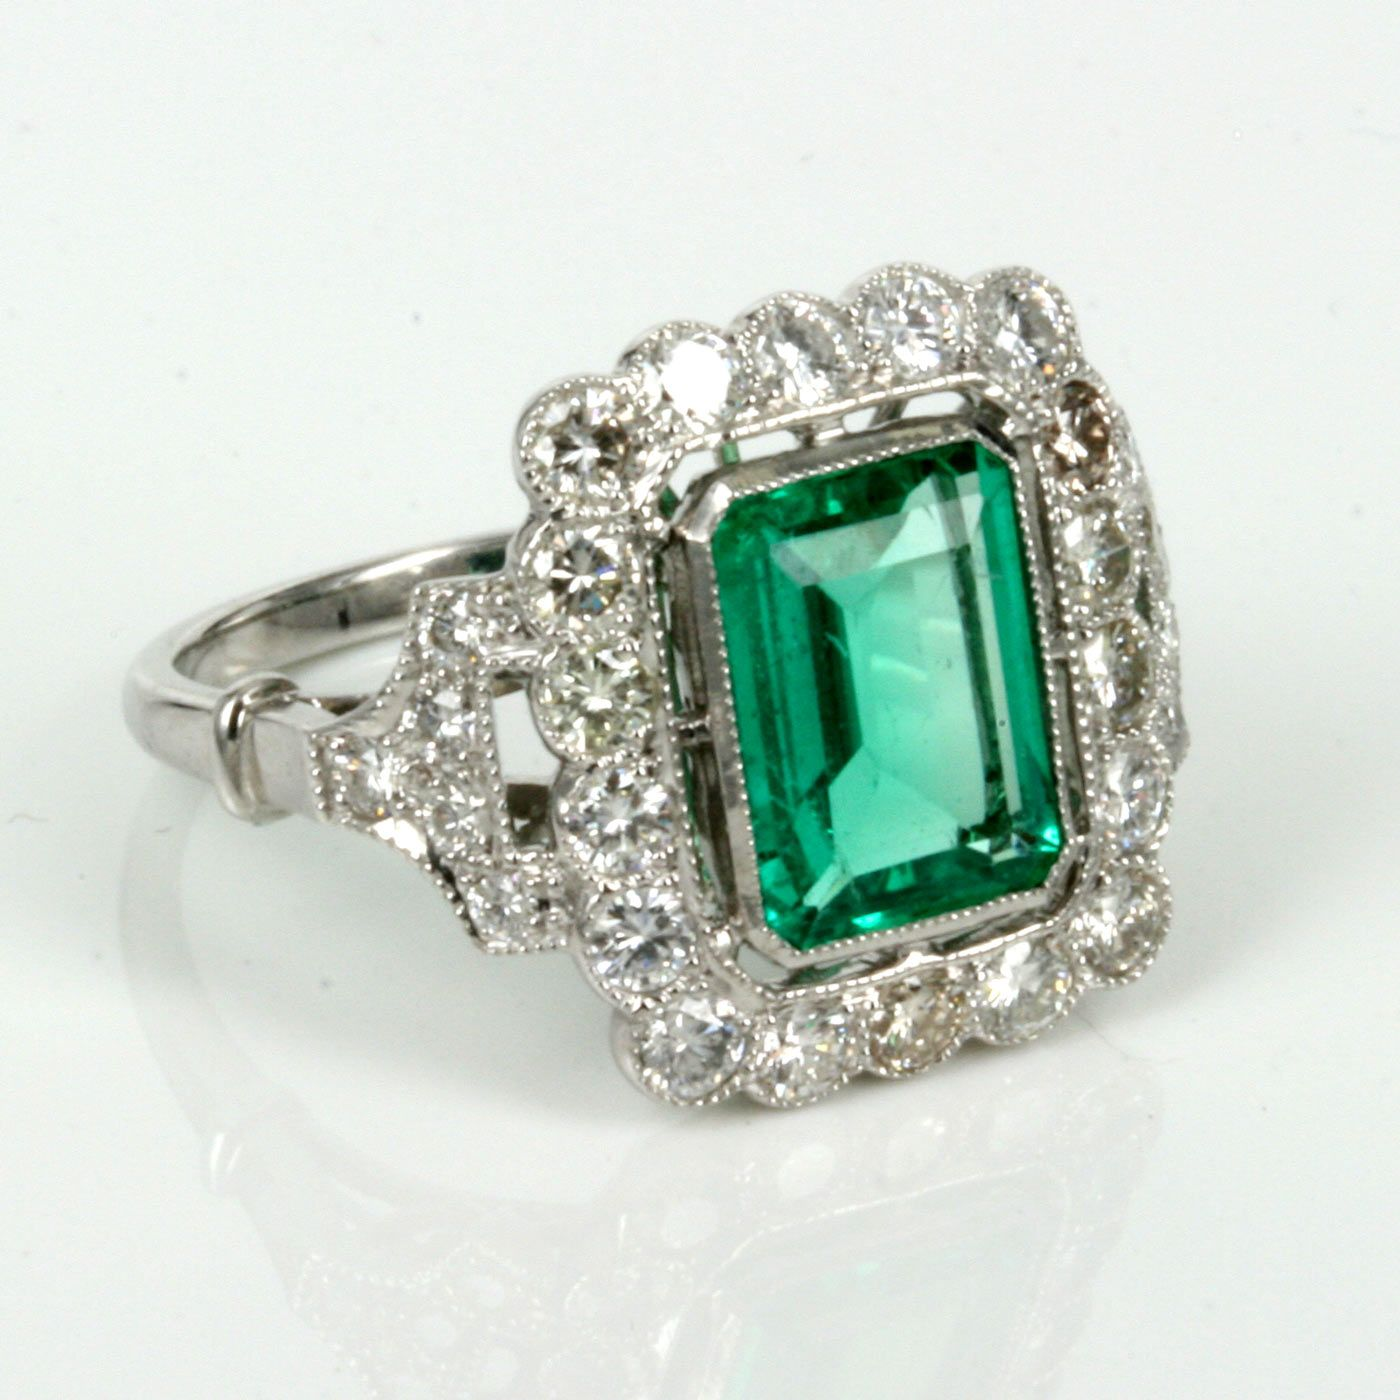 heat p emerald green quartz treated s sharp